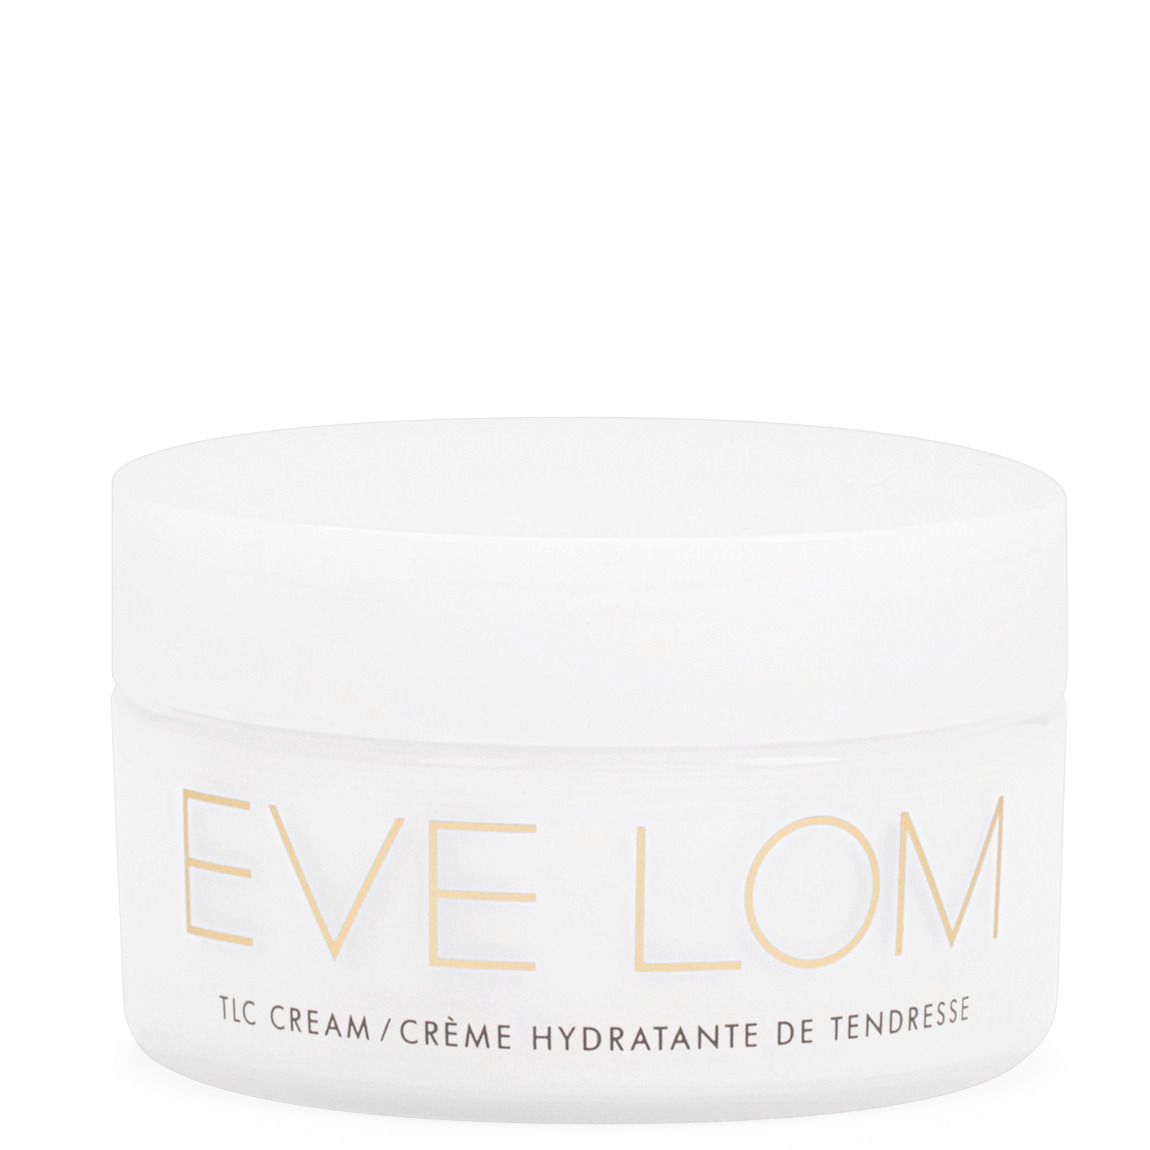 EVE LOM TLC Cream product smear.